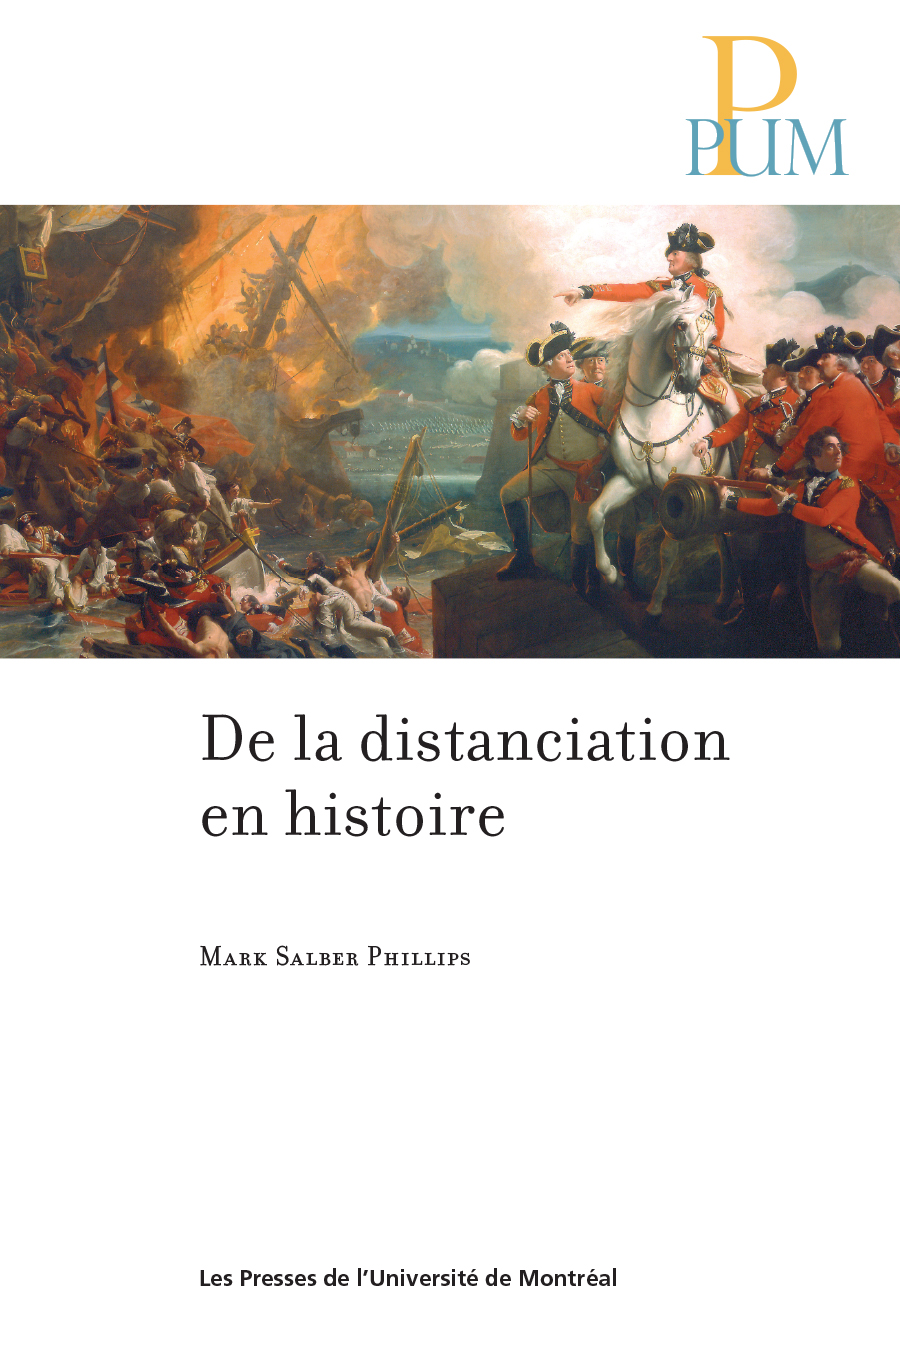 De la distanciation en hist...